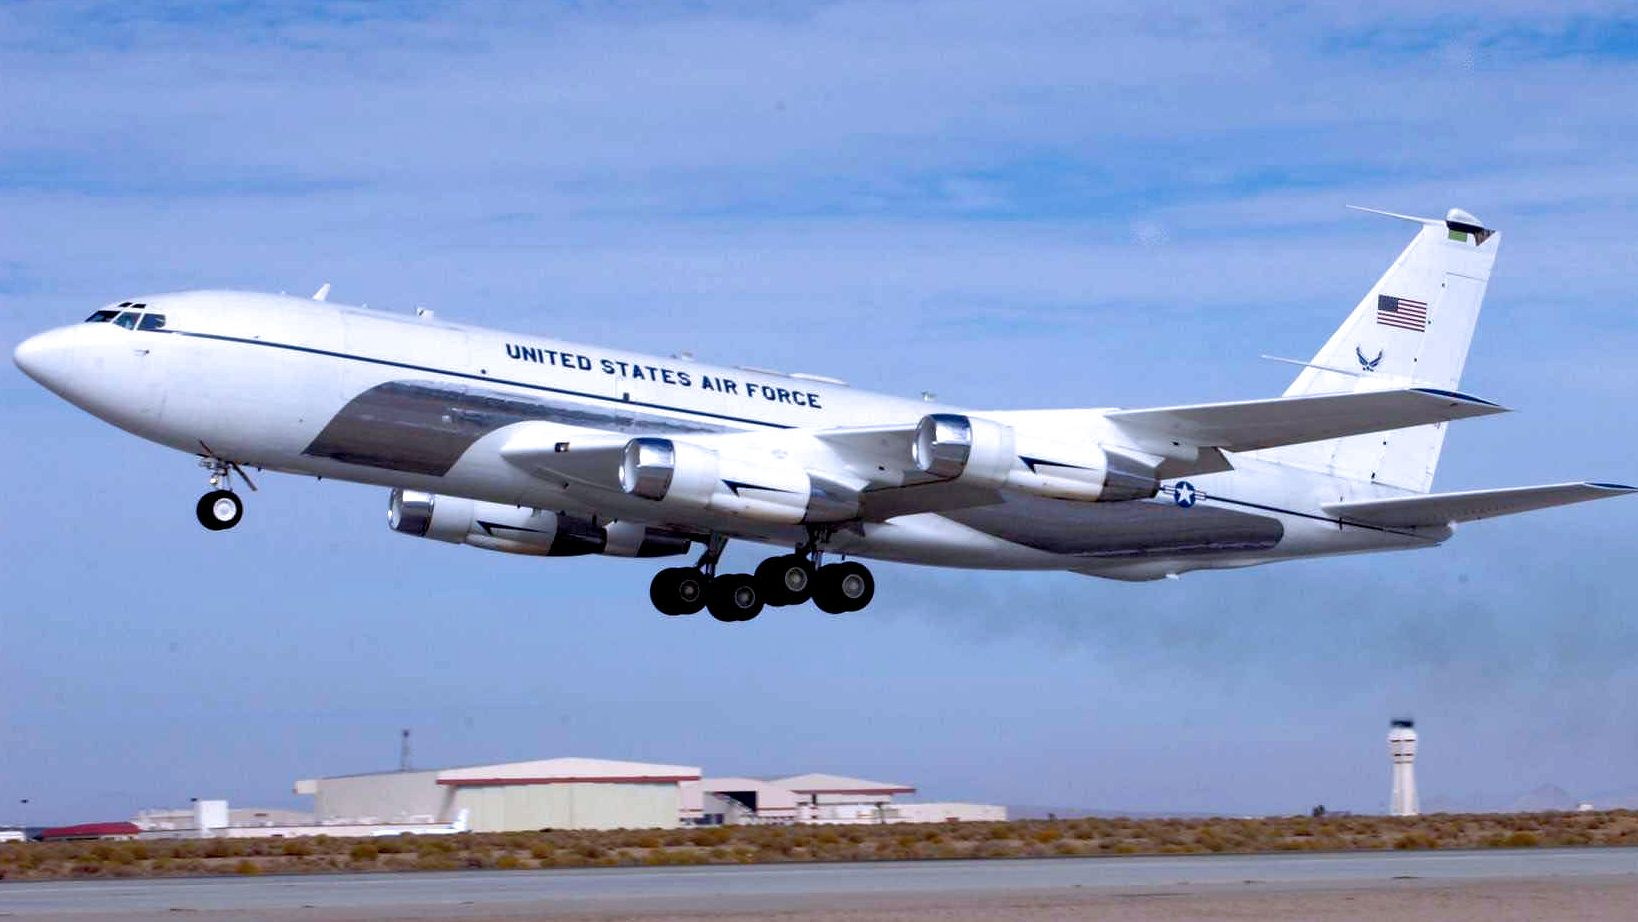 File:412th Flight Test Squadron - C-135C Speckled Trout 61-2669.